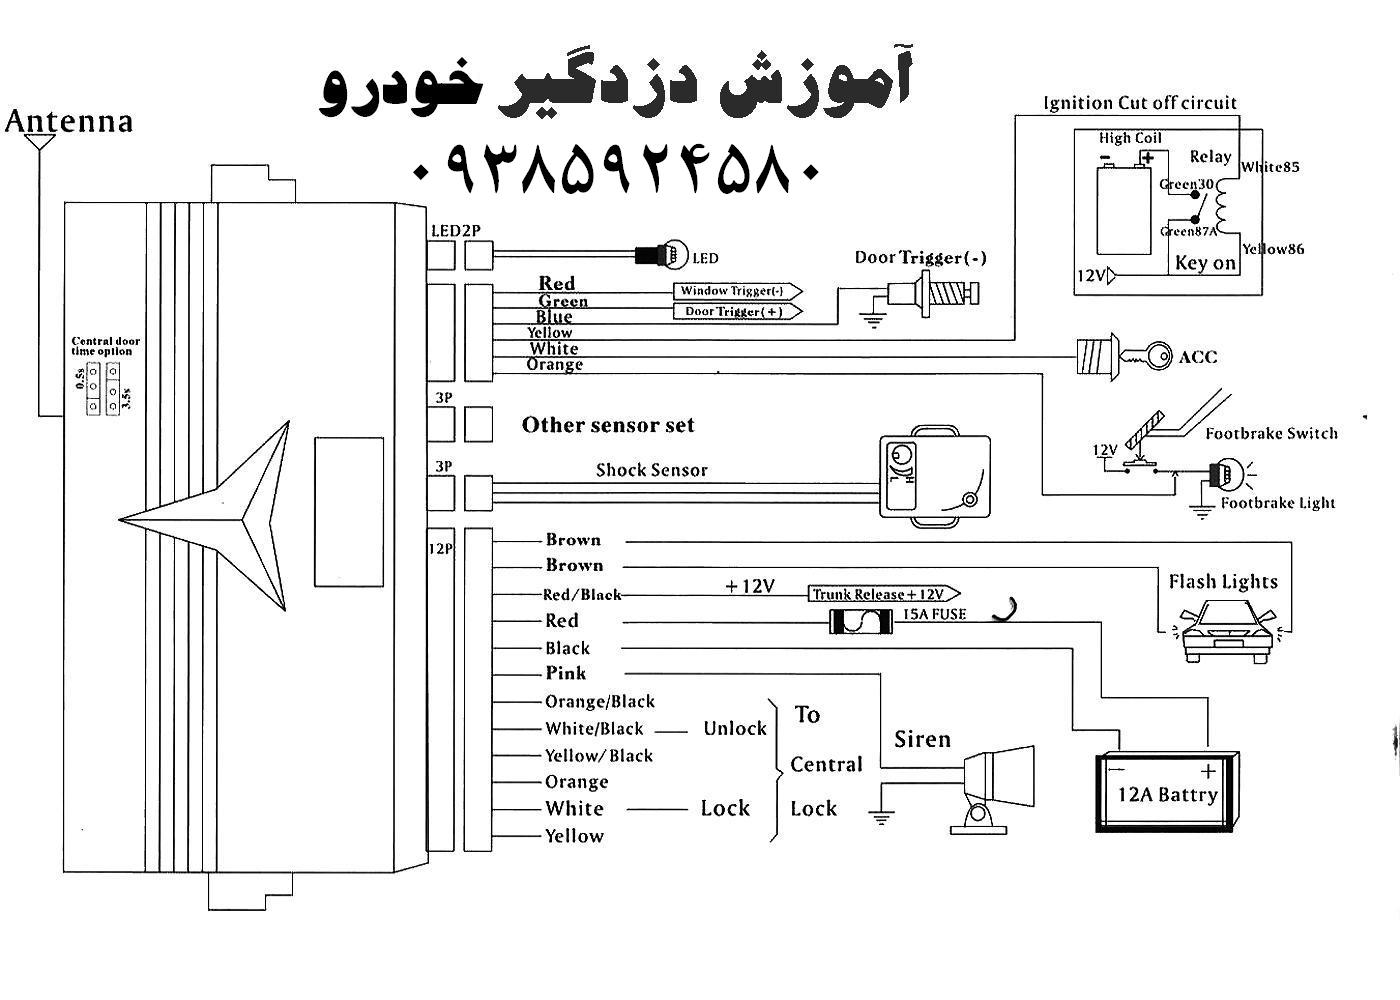 car alarm map (10) wiring diagram for viper car alarm efcaviation com viper car alarm wiring diagram at creativeand.co